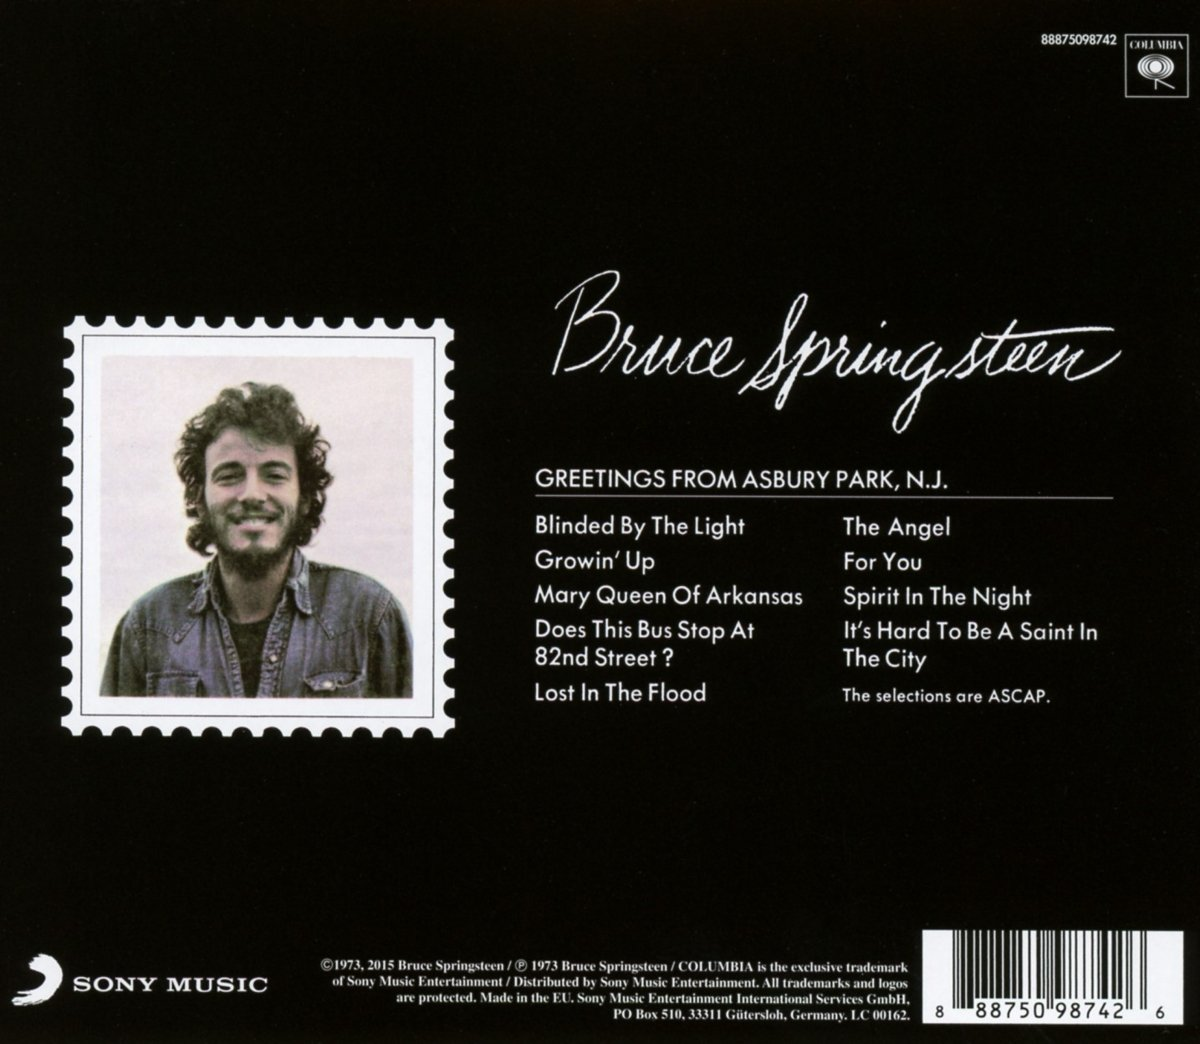 Bruce springsteen greetings from asbury park nj amazon music m4hsunfo